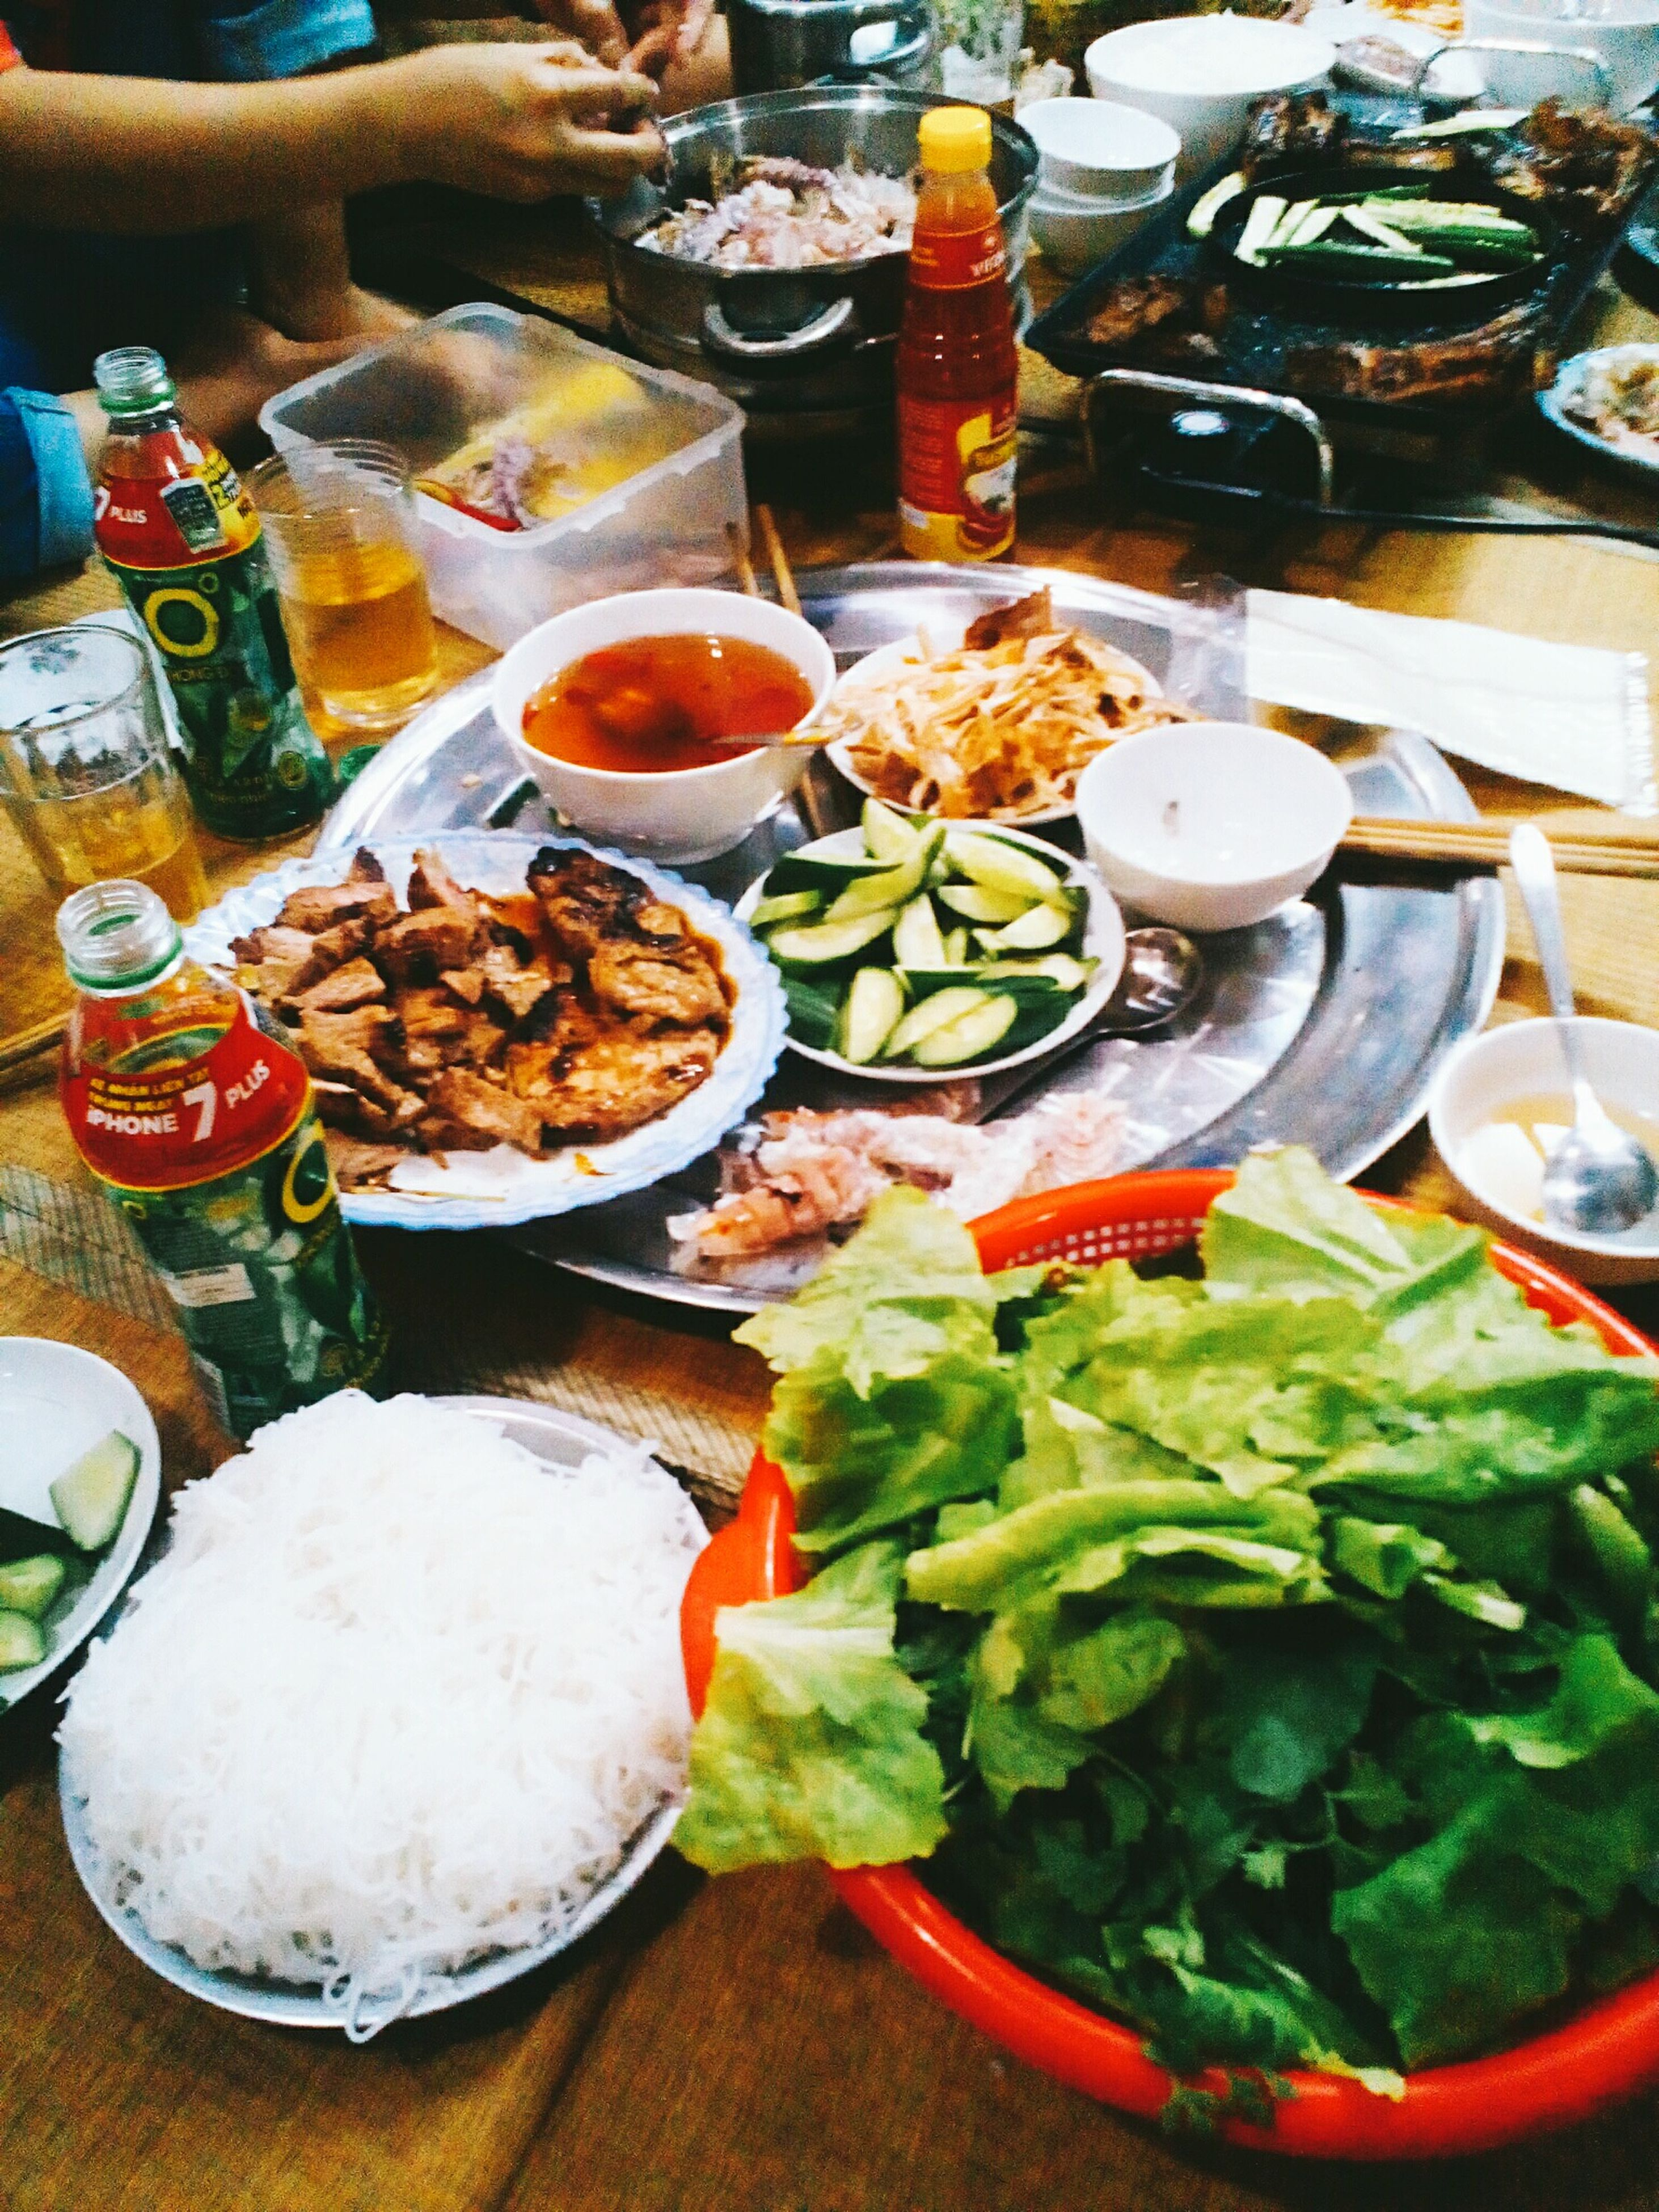 food and drink, food, table, plate, freshness, ready-to-eat, serving size, vegetable, healthy eating, indoors, bowl, variation, meal, no people, close-up, day